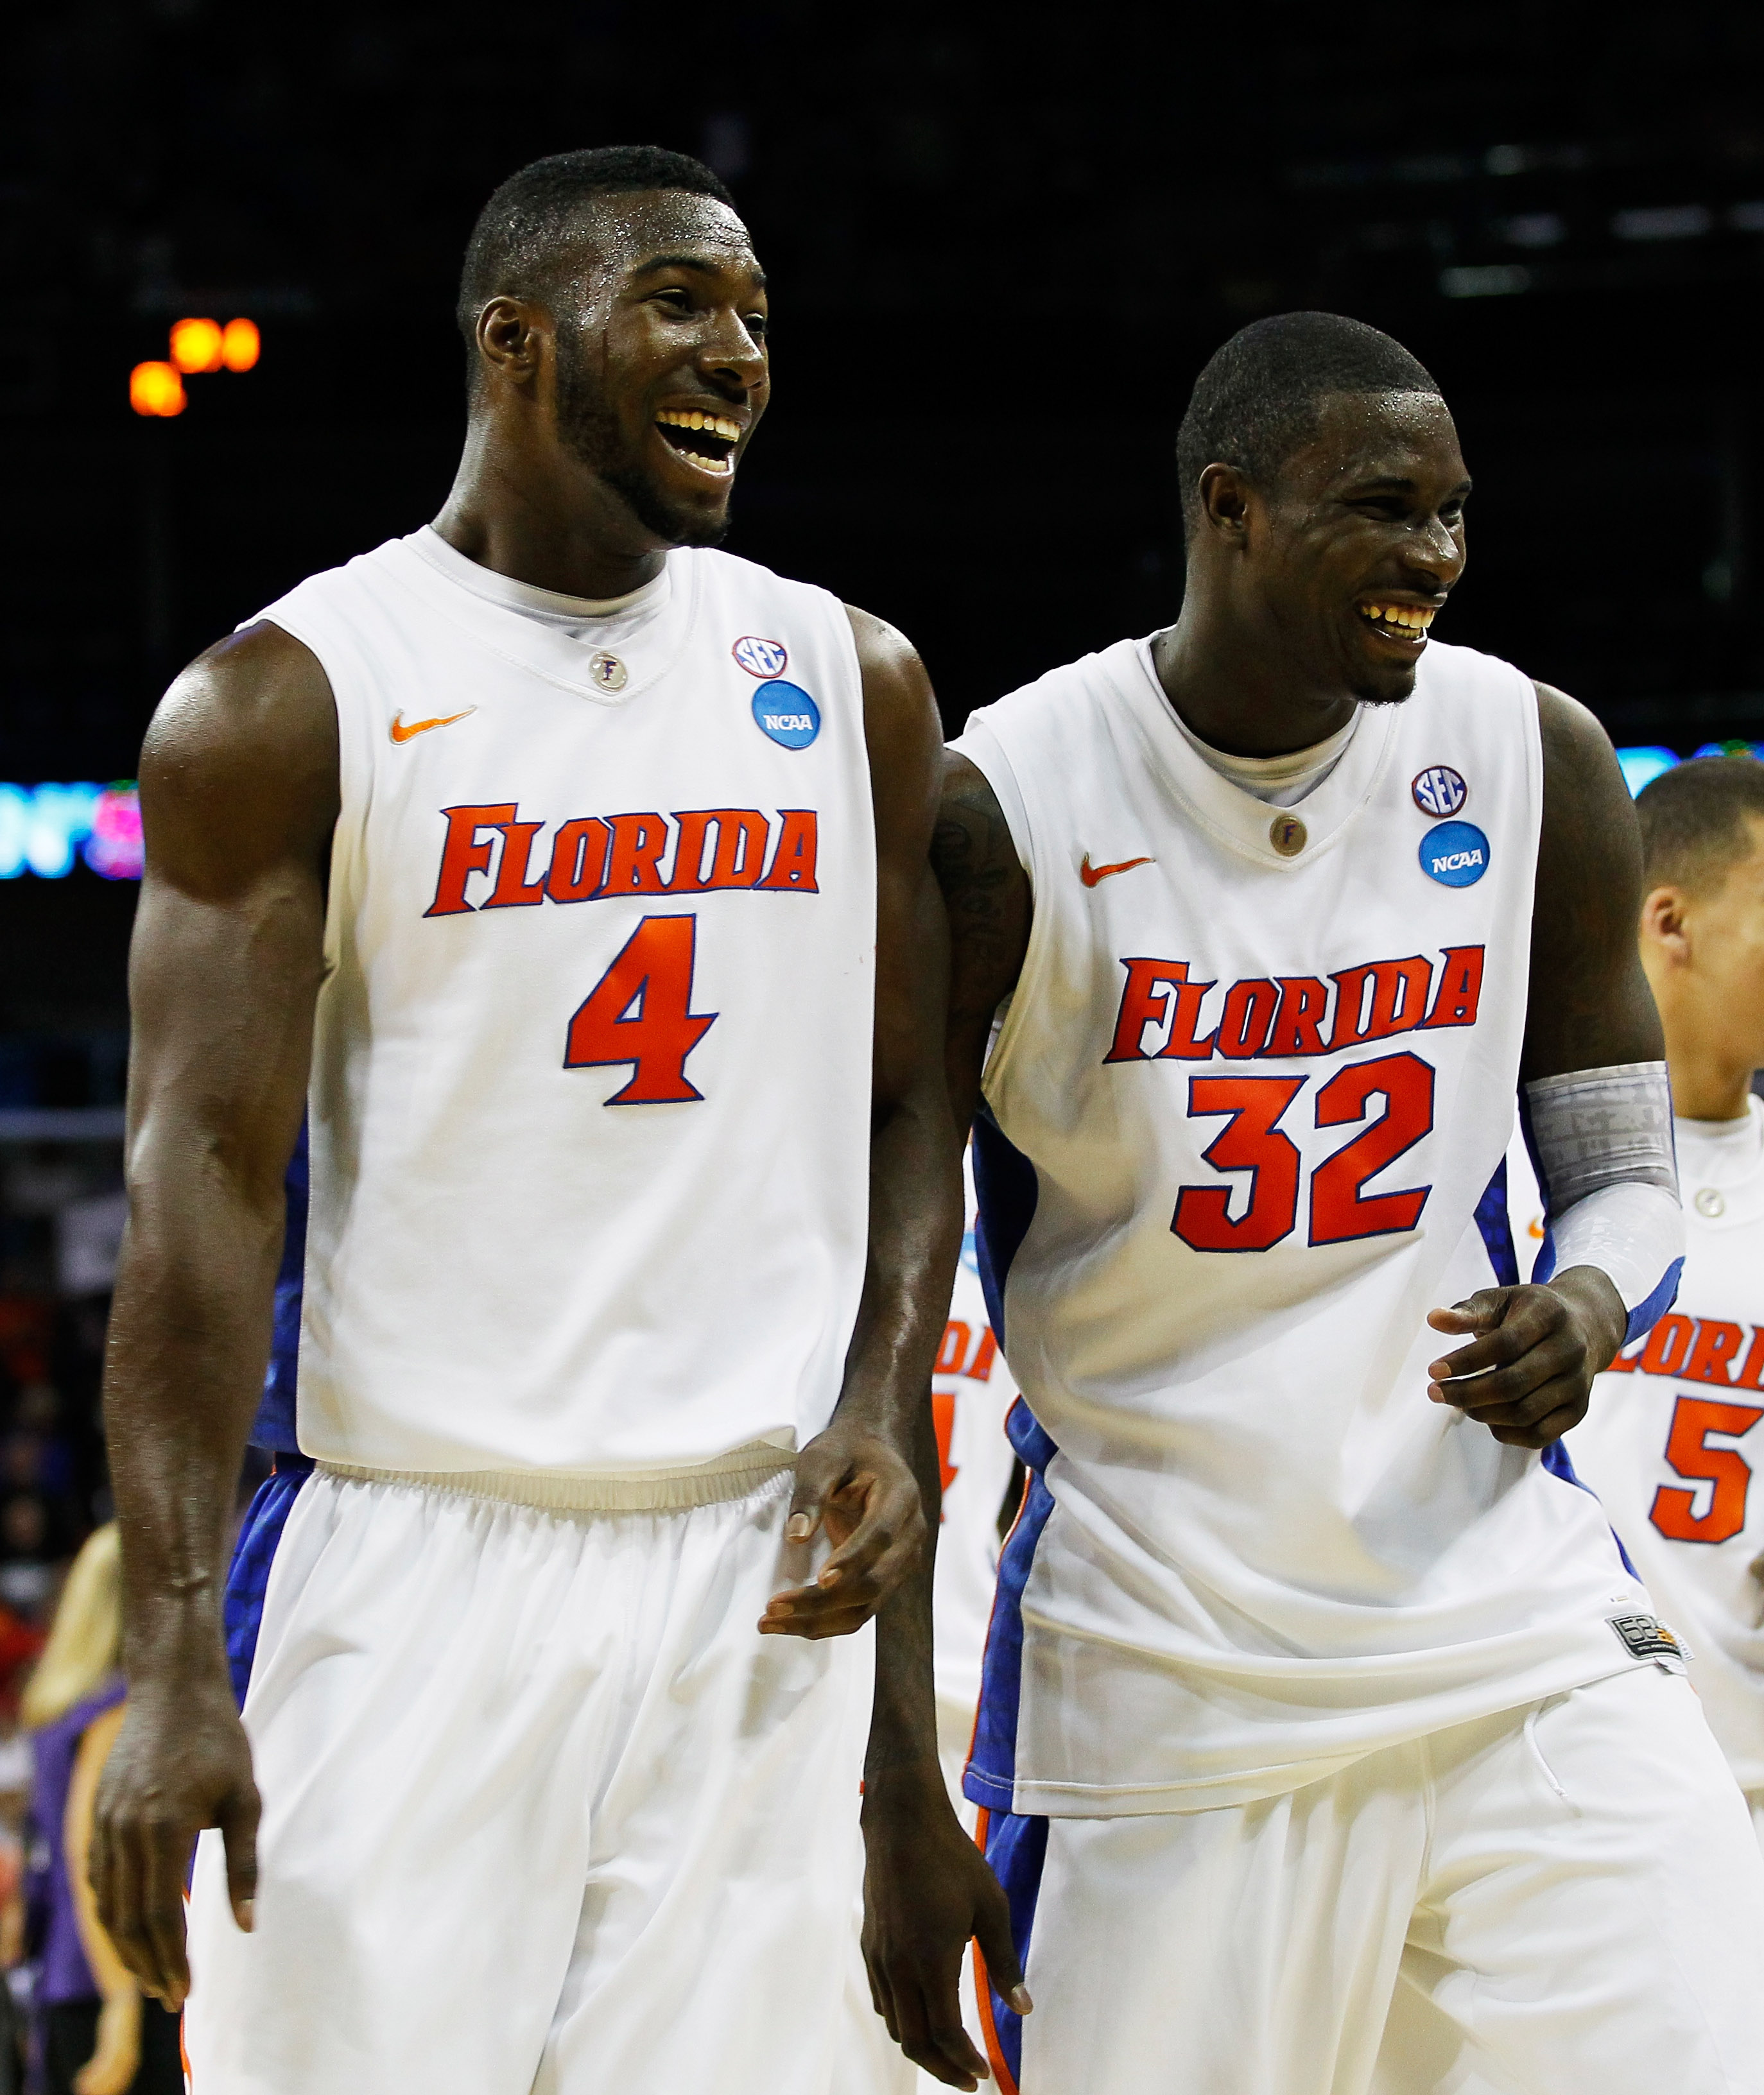 NEW ORLEANS, LA - MARCH 24:  Patric Young #4 and Vernon Macklin #32 of the Florida Gators celebrate durig their 83 to 74 win over the Brigham Young Cougars during the Southeast regional of the 2011 NCAA men's basketball tournament at New Orleans Arena on